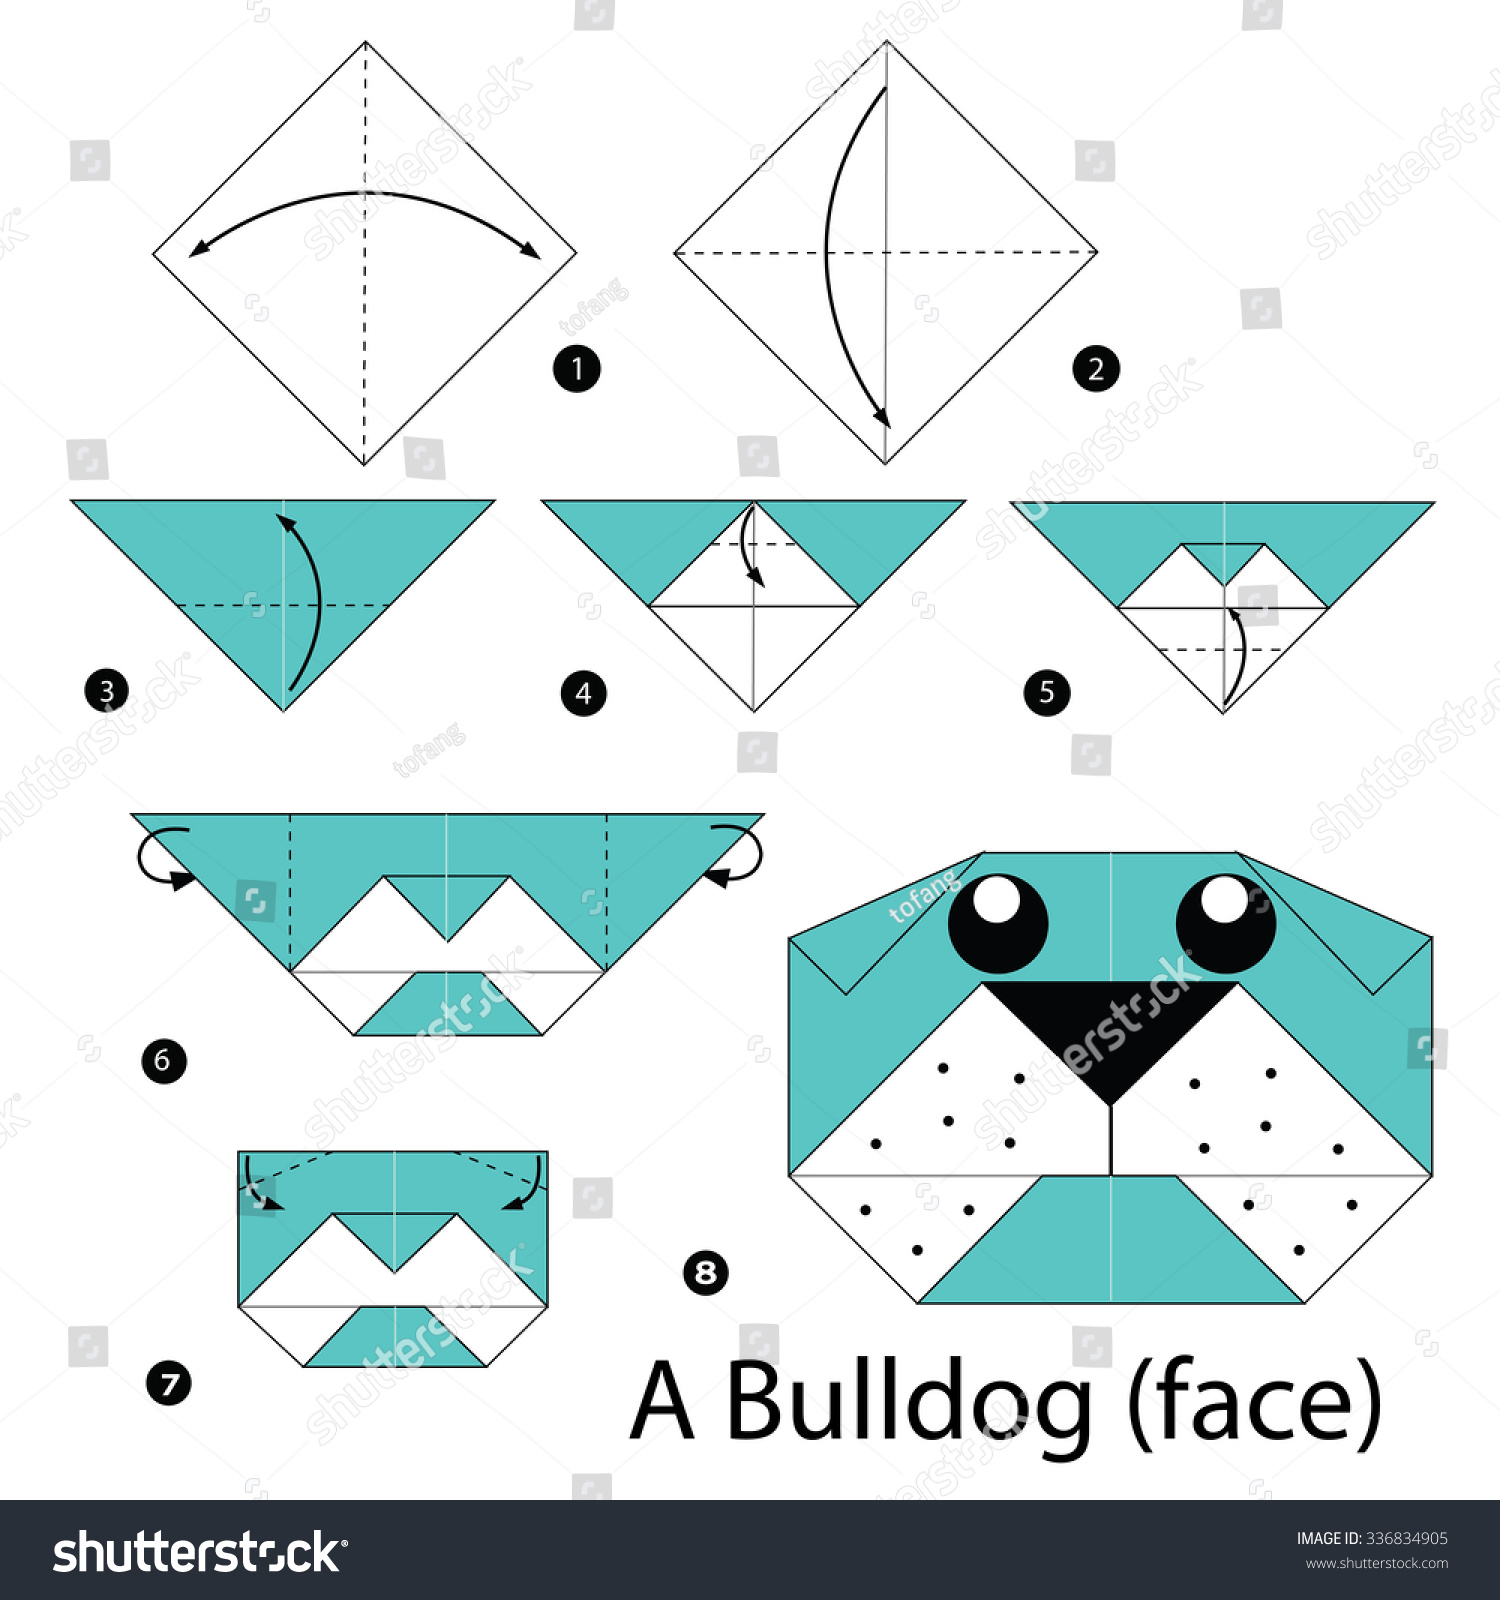 Step By Step Instructions How To Make Origami A Bulldog (face